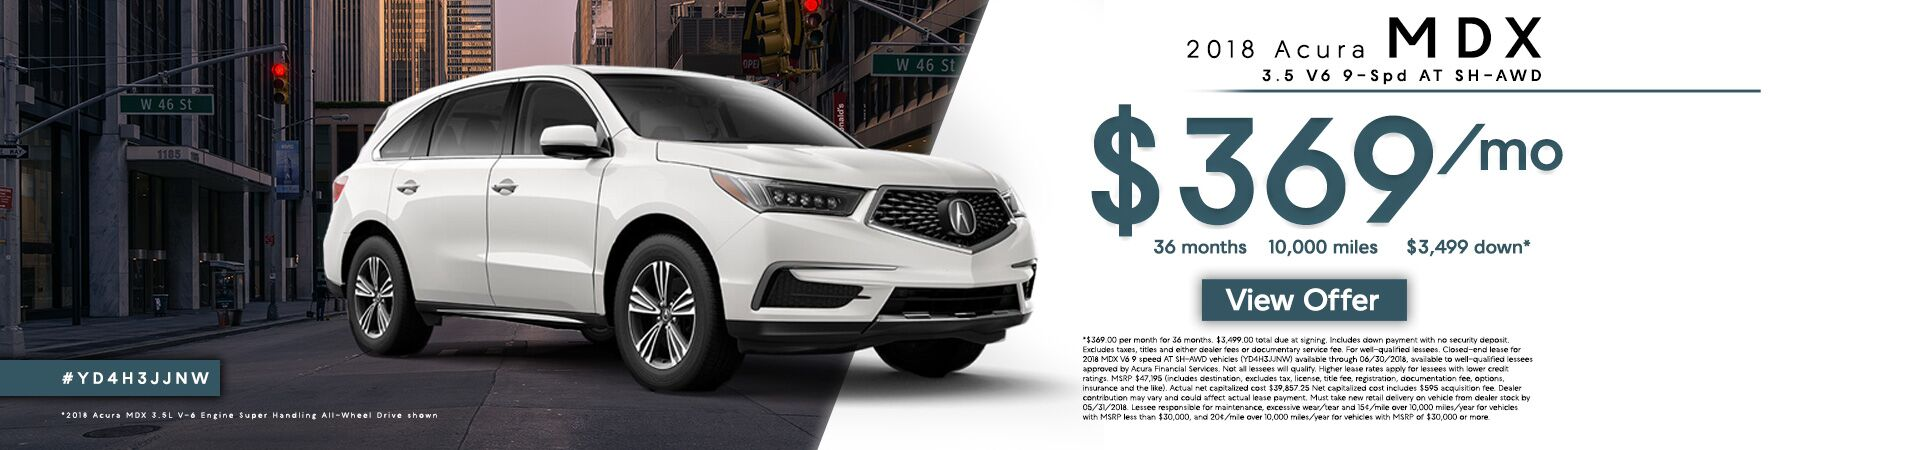 new acura mdx mcmurray pa